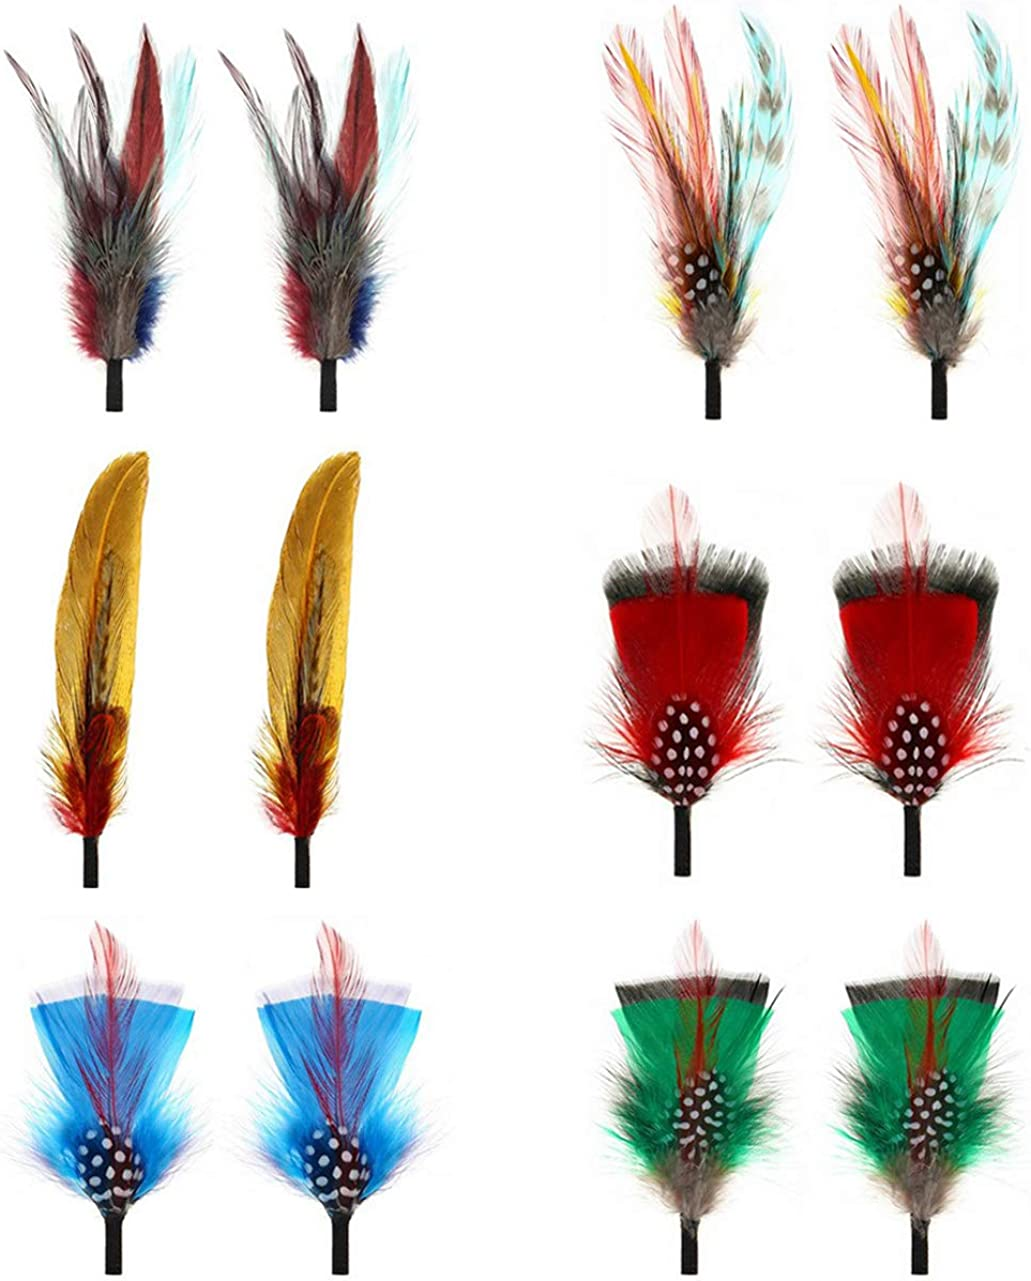 FALETO Hat Feathers 12 Pcs Assorted Natural Feather Packs Accessories